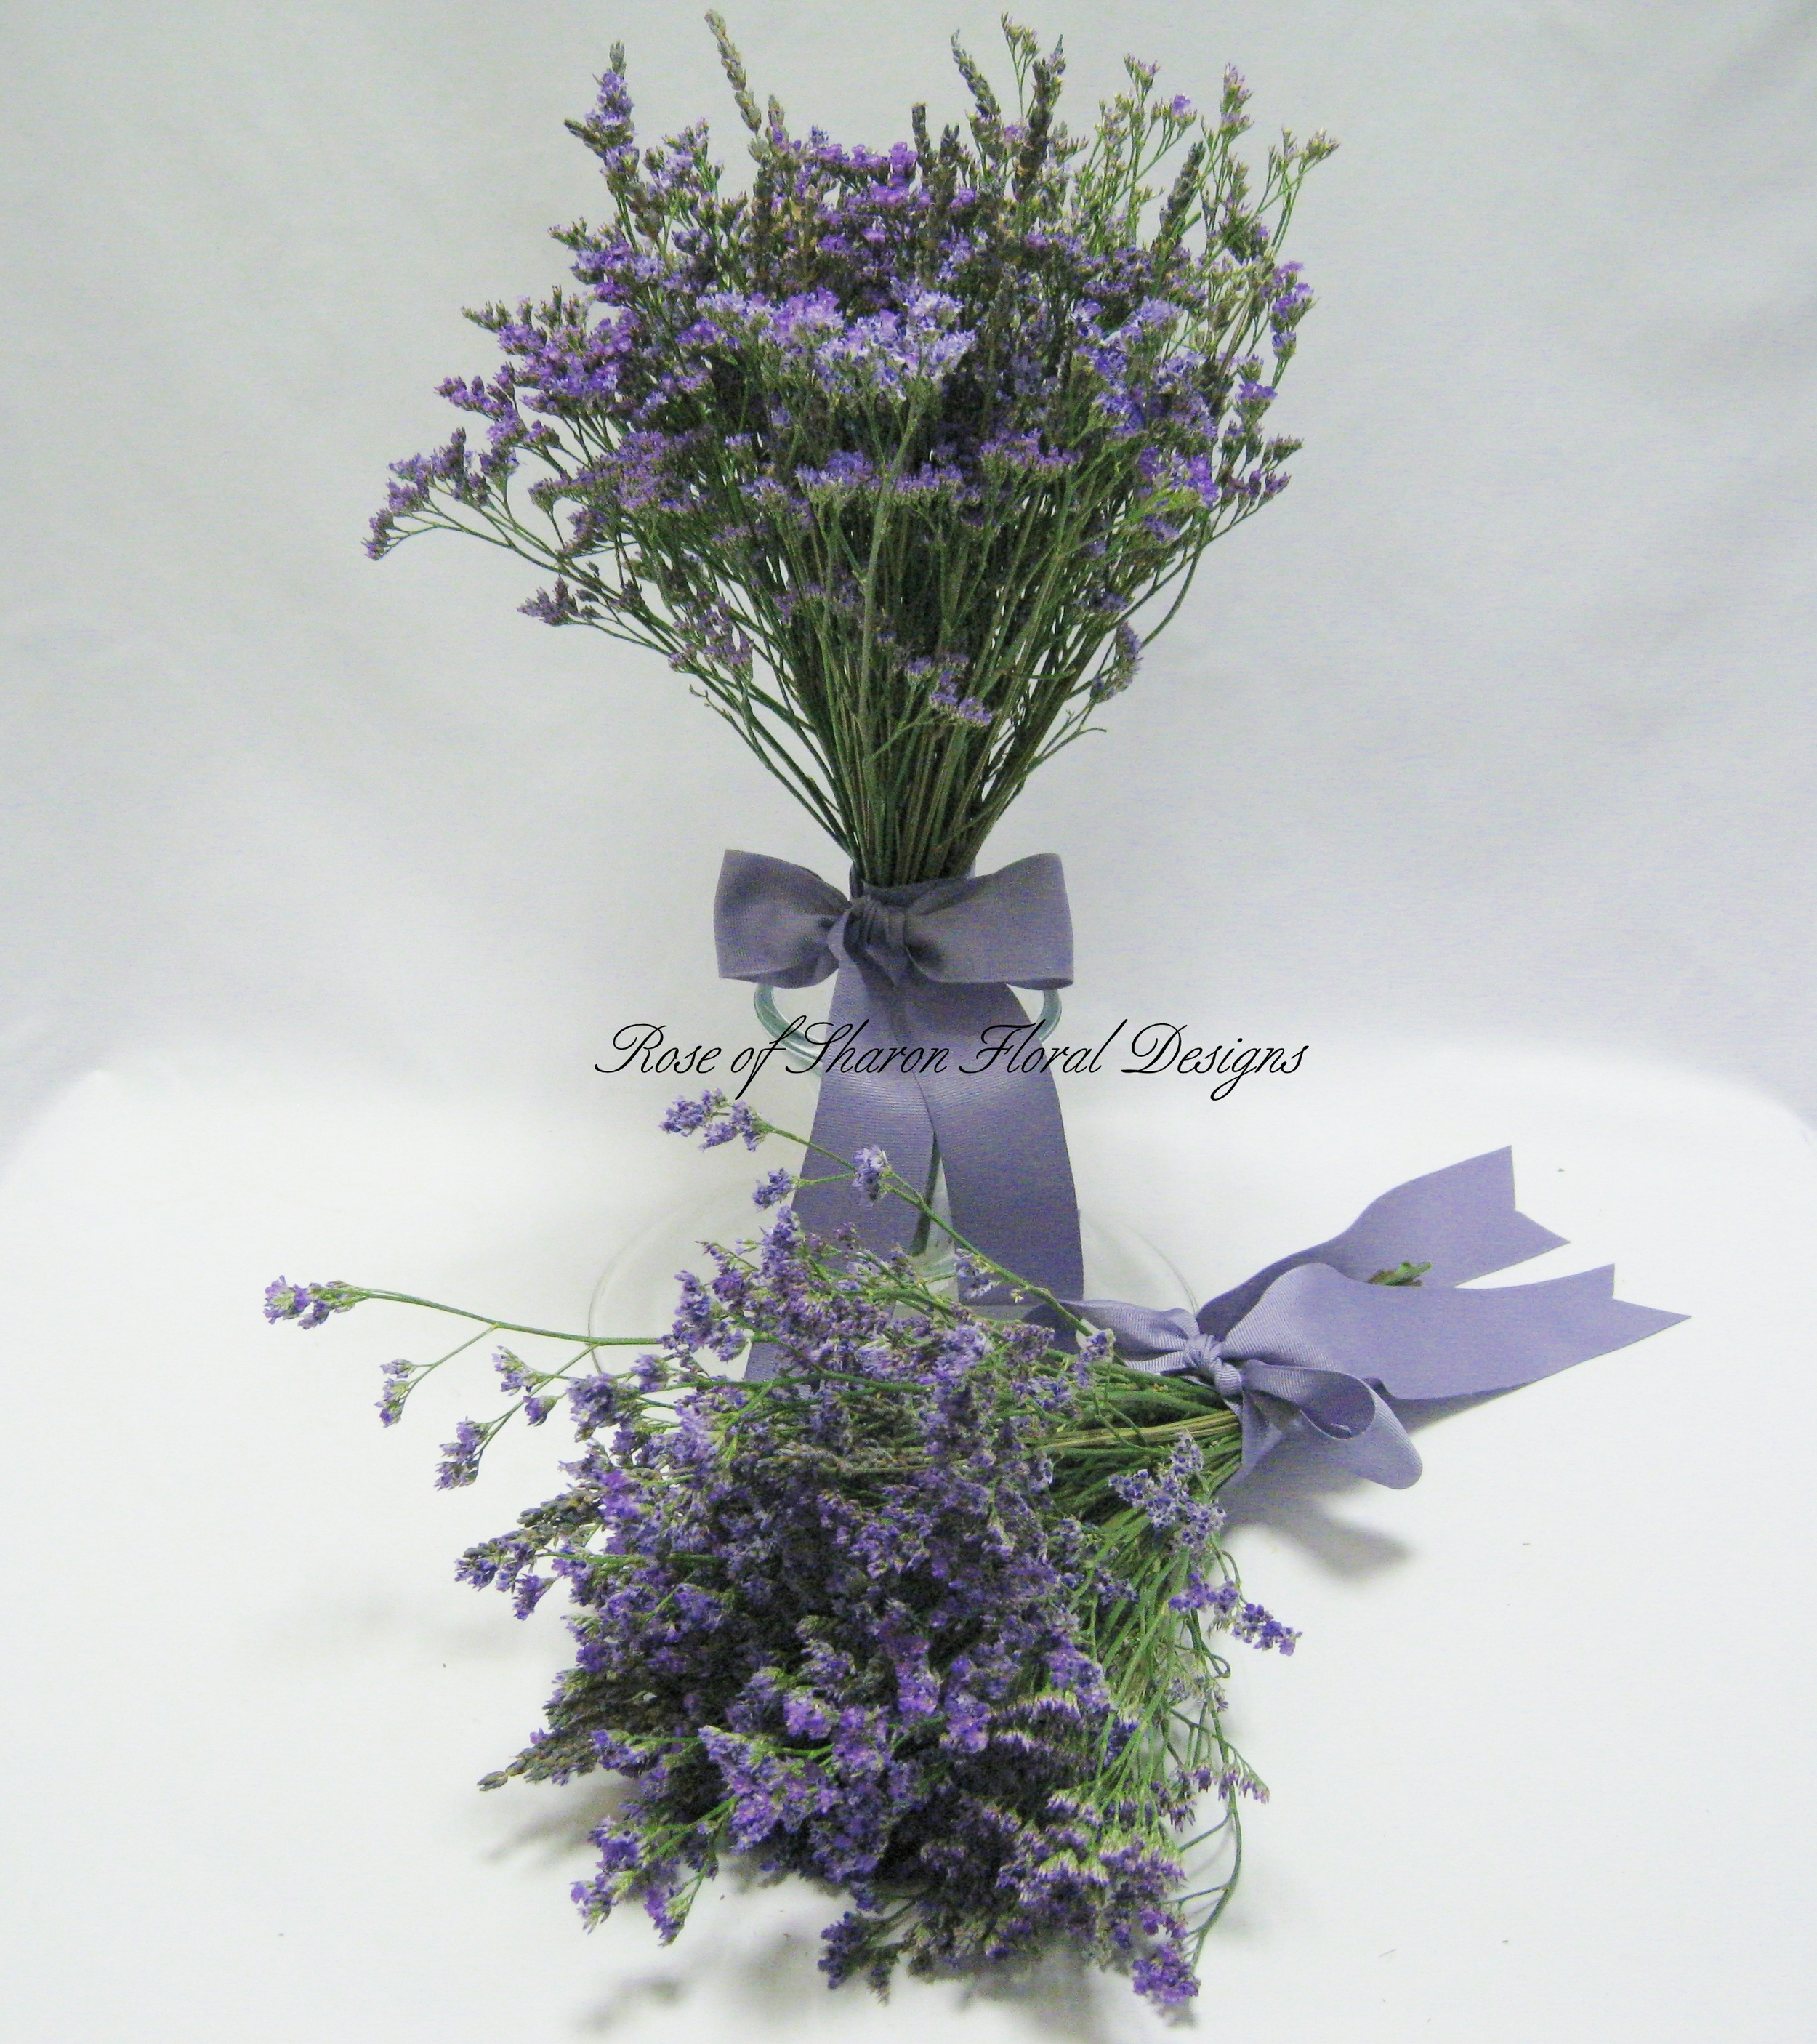 Hand Tied Limonium Bouquets, Rose of Sharon Floral Designs